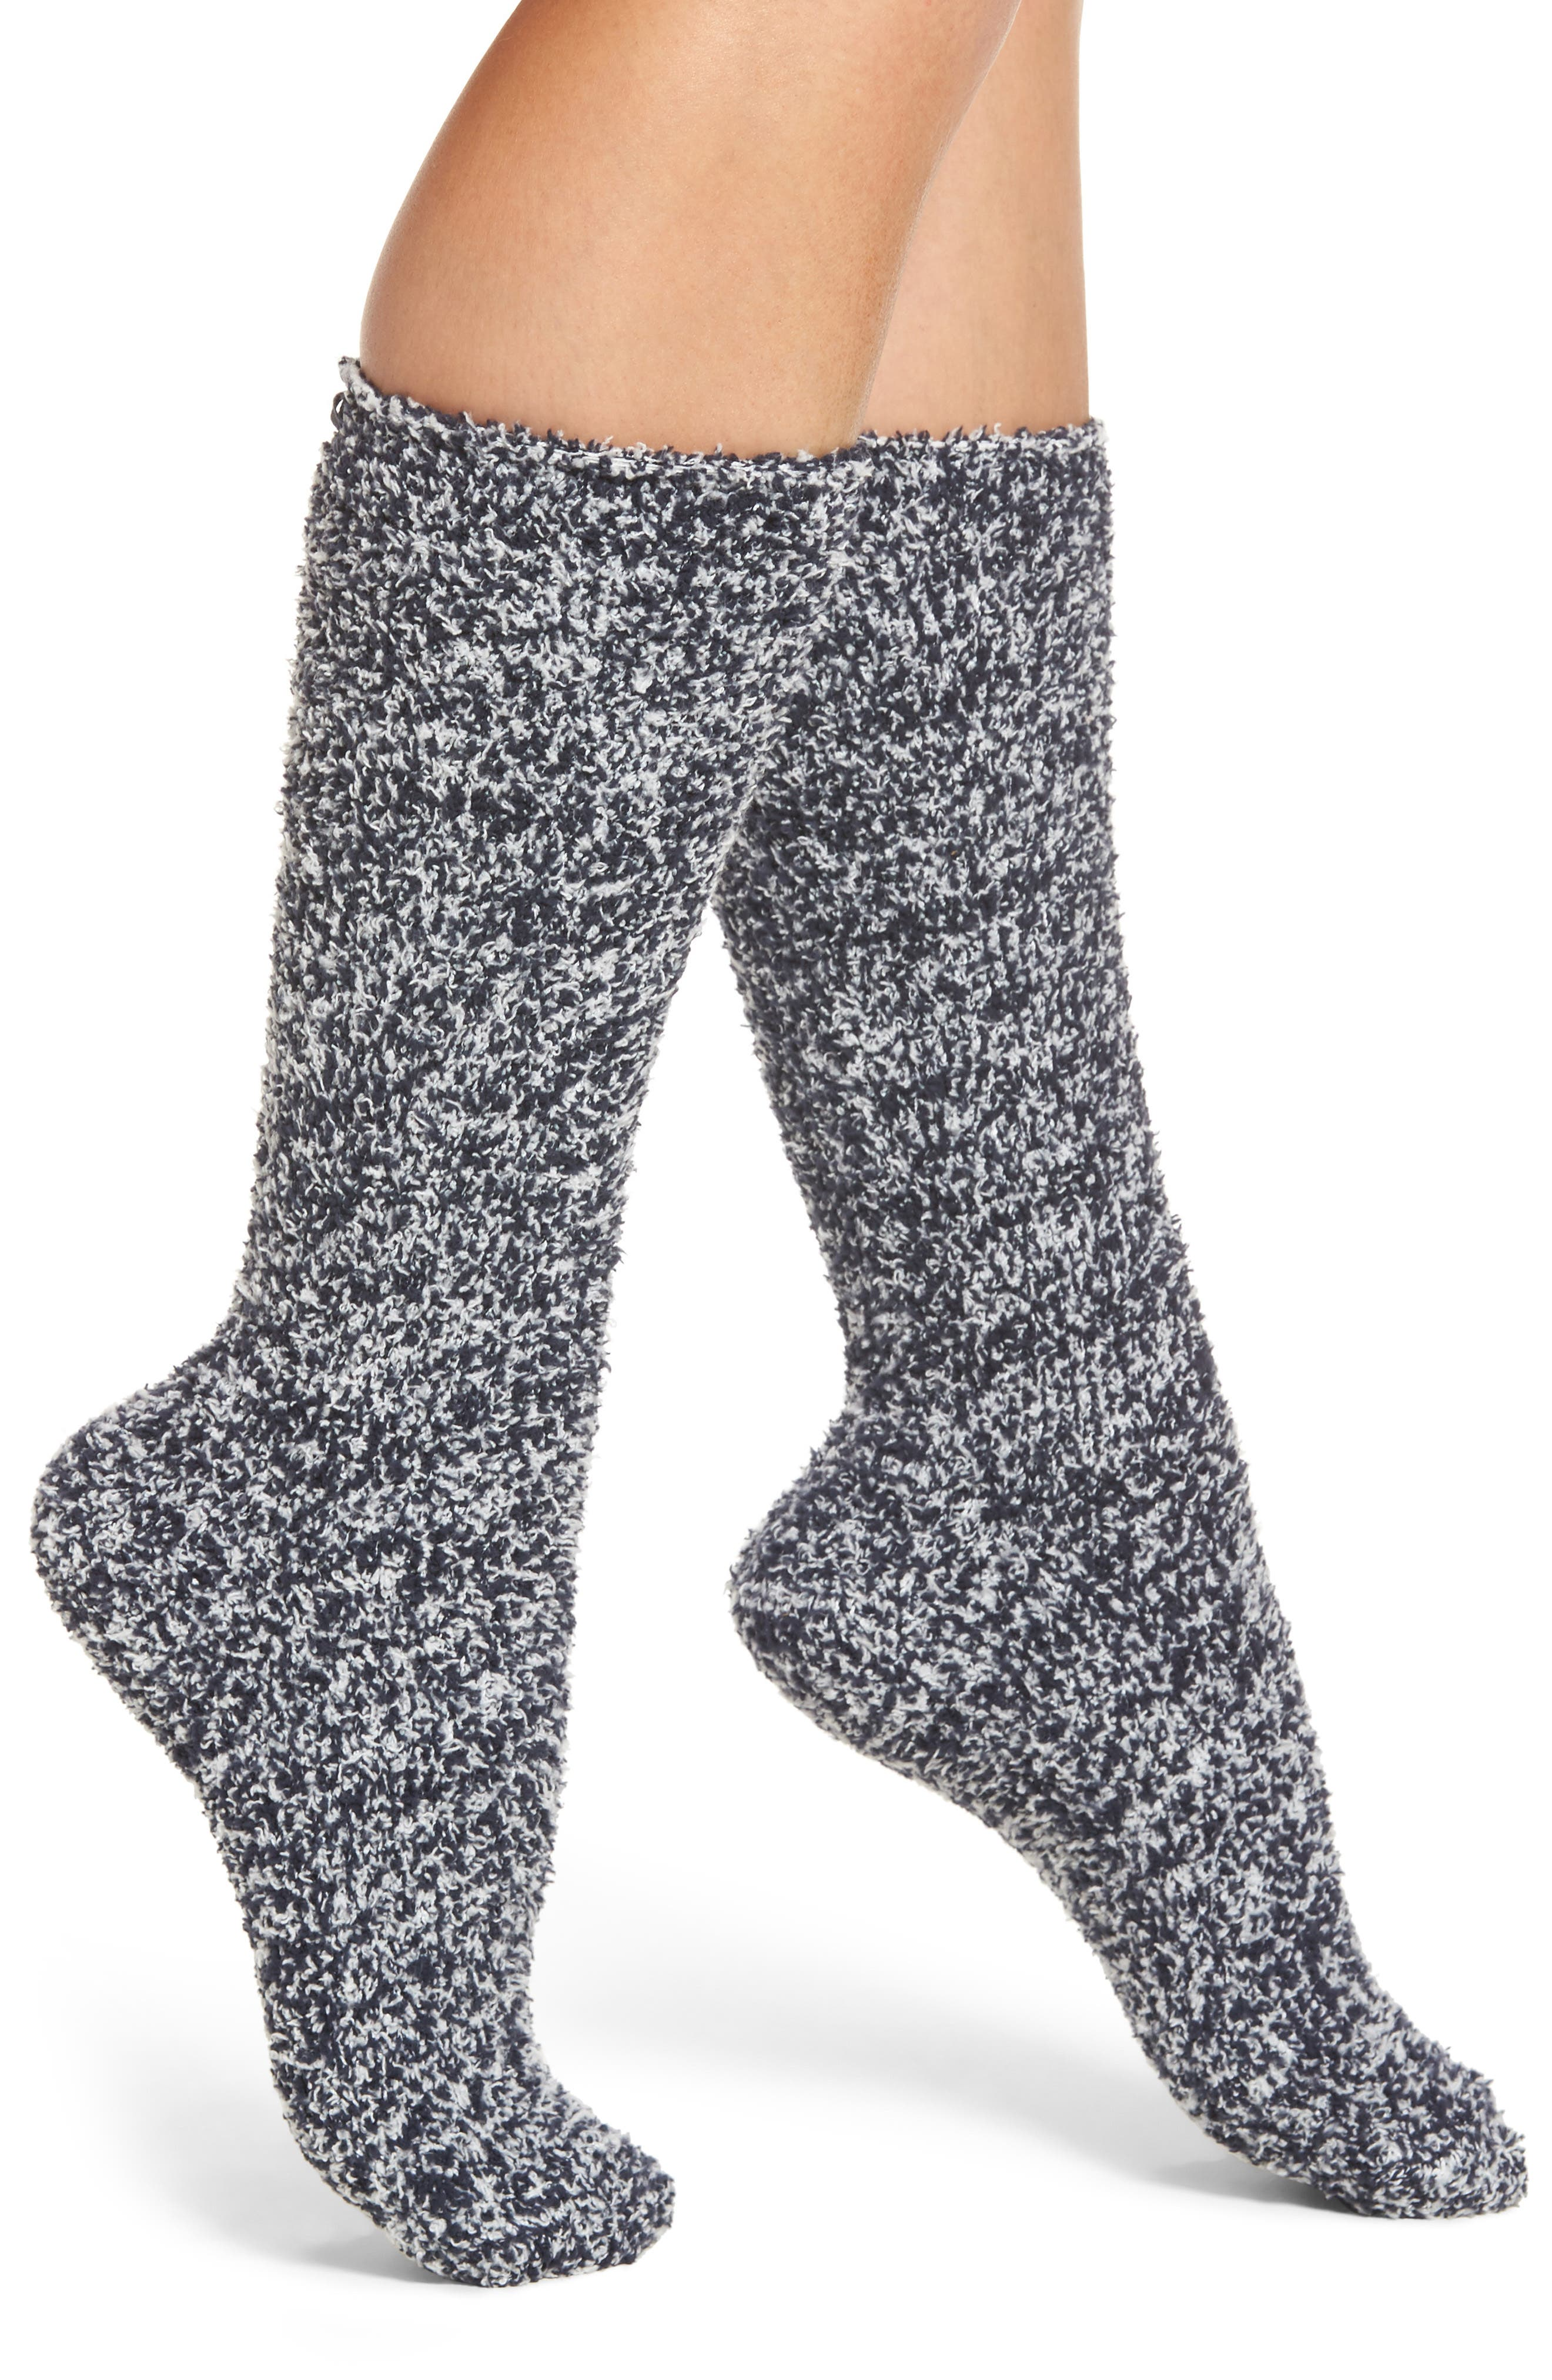 CozyChic<sup>®</sup> Socks,                             Main thumbnail 1, color,                             INDIGO/ WHITE